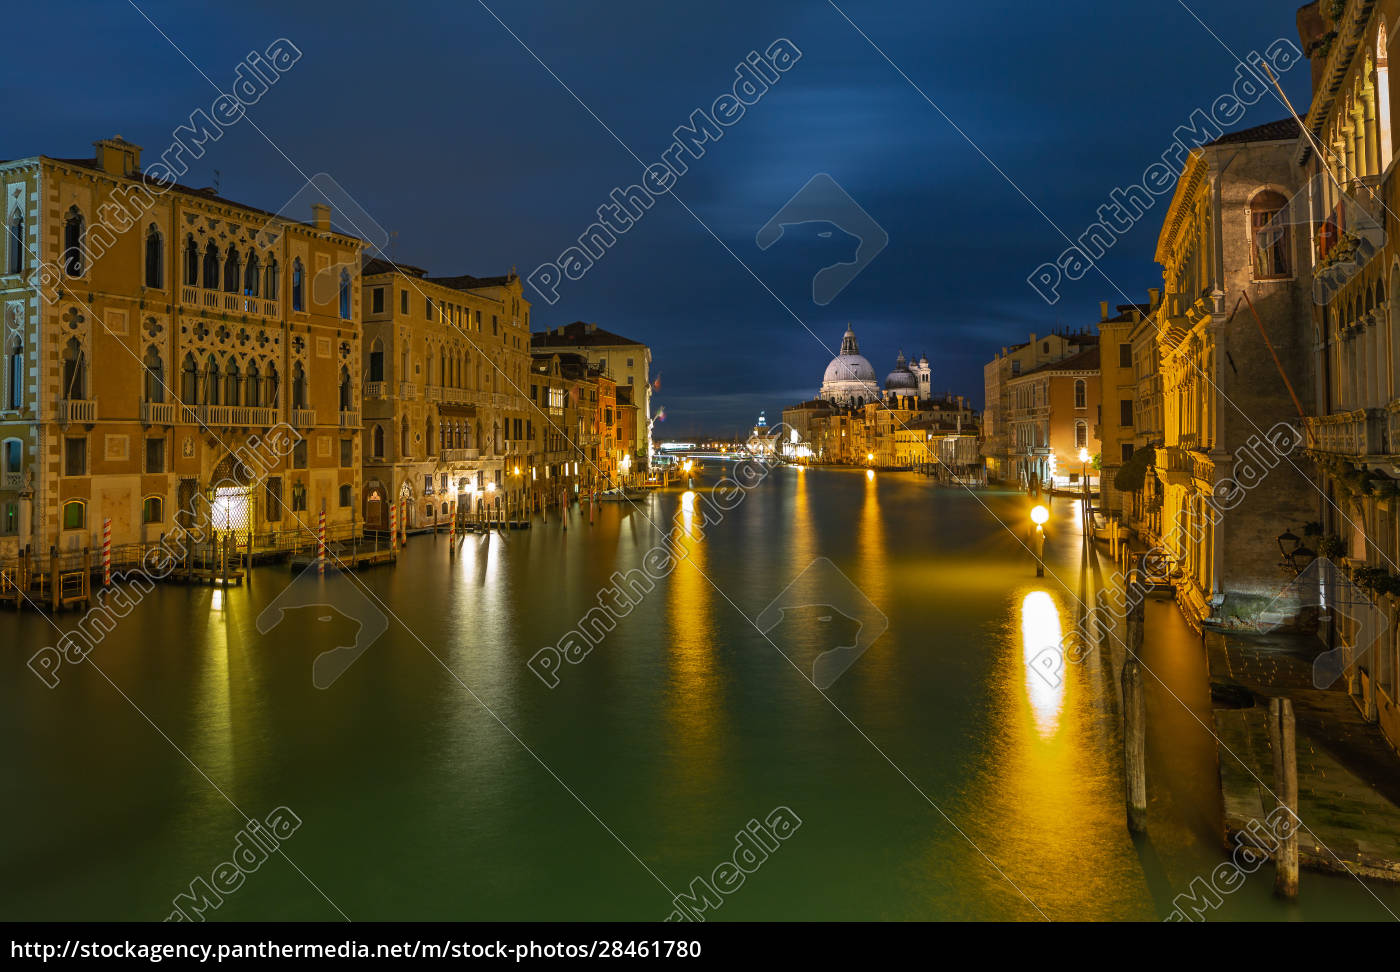 grand, canal, in, venice, at, night - 28461780